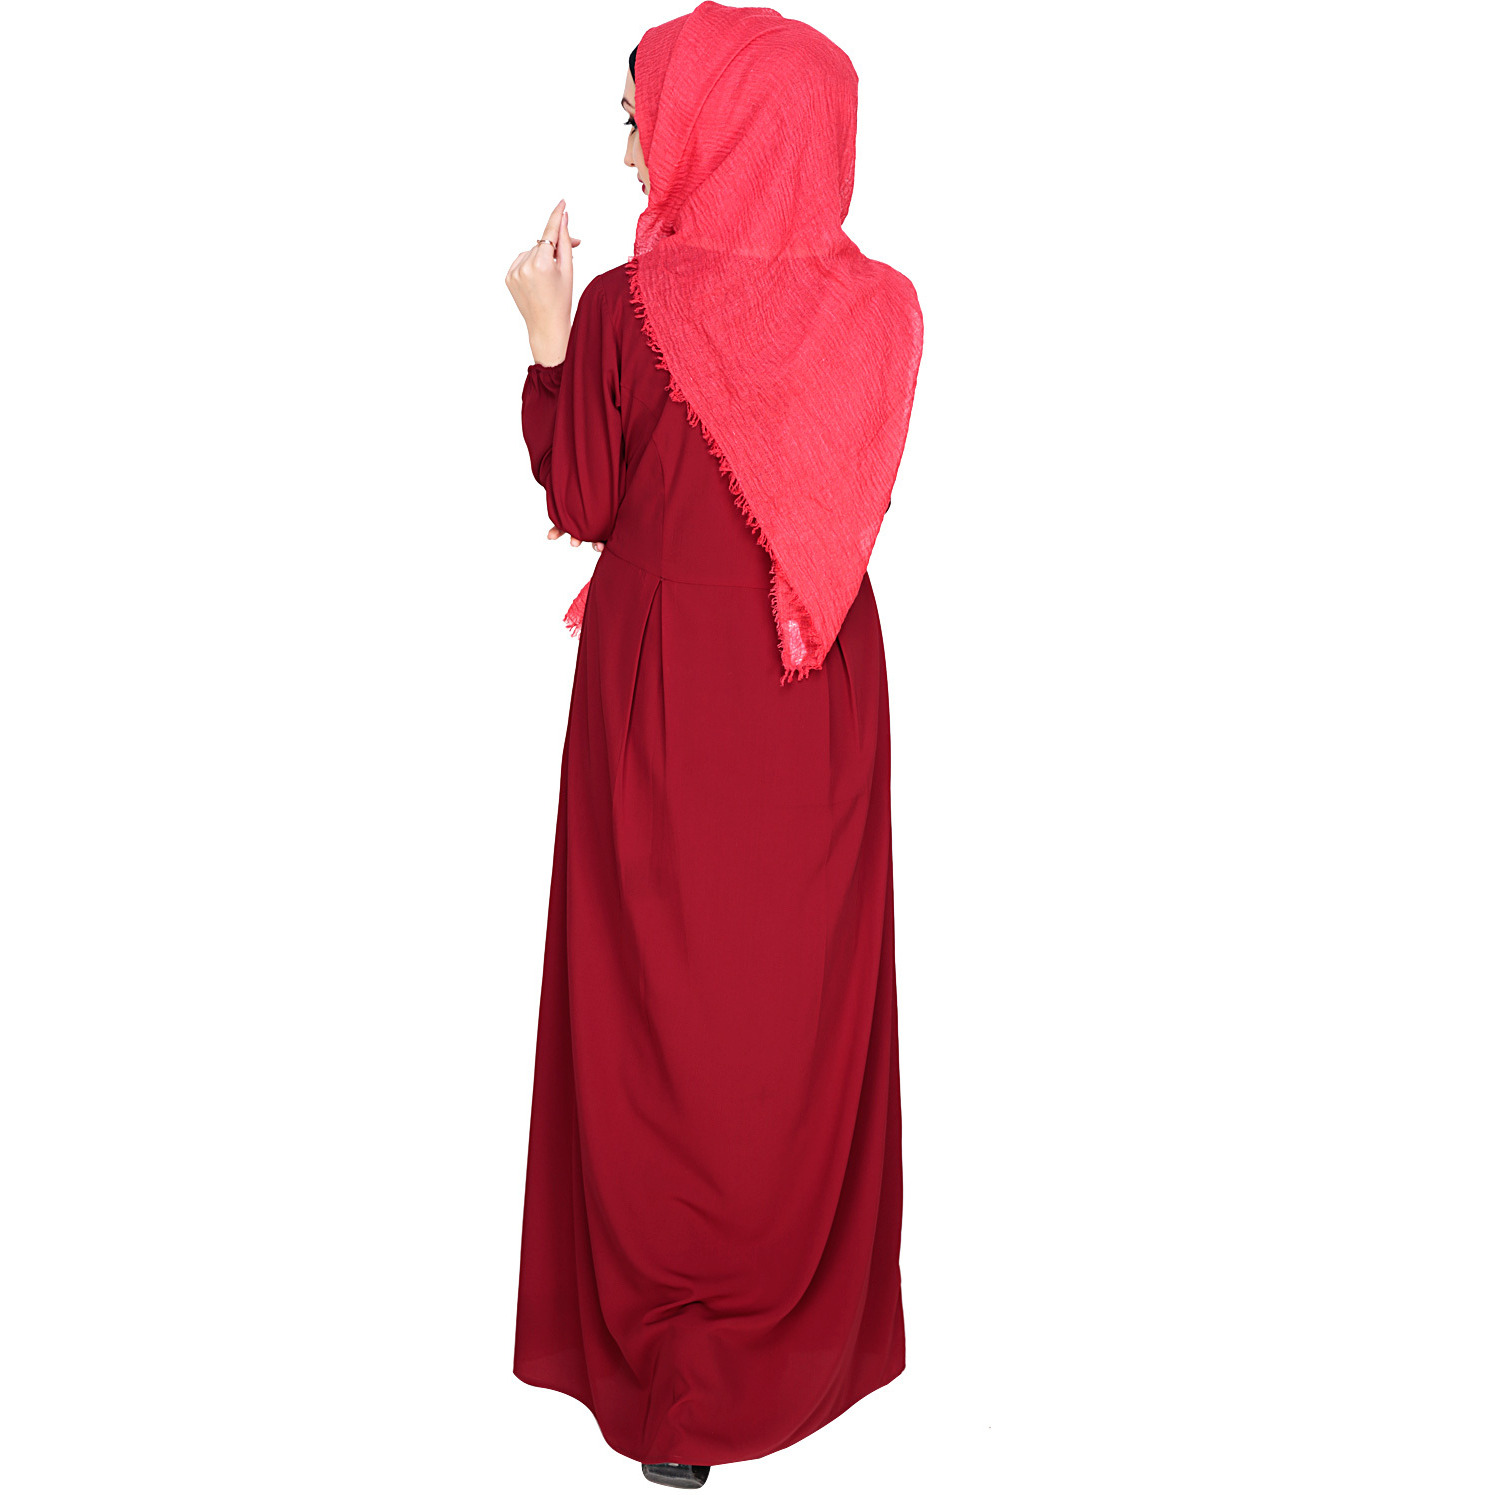 Modest Forever Box Pleated Wine Abaya (Size: M)